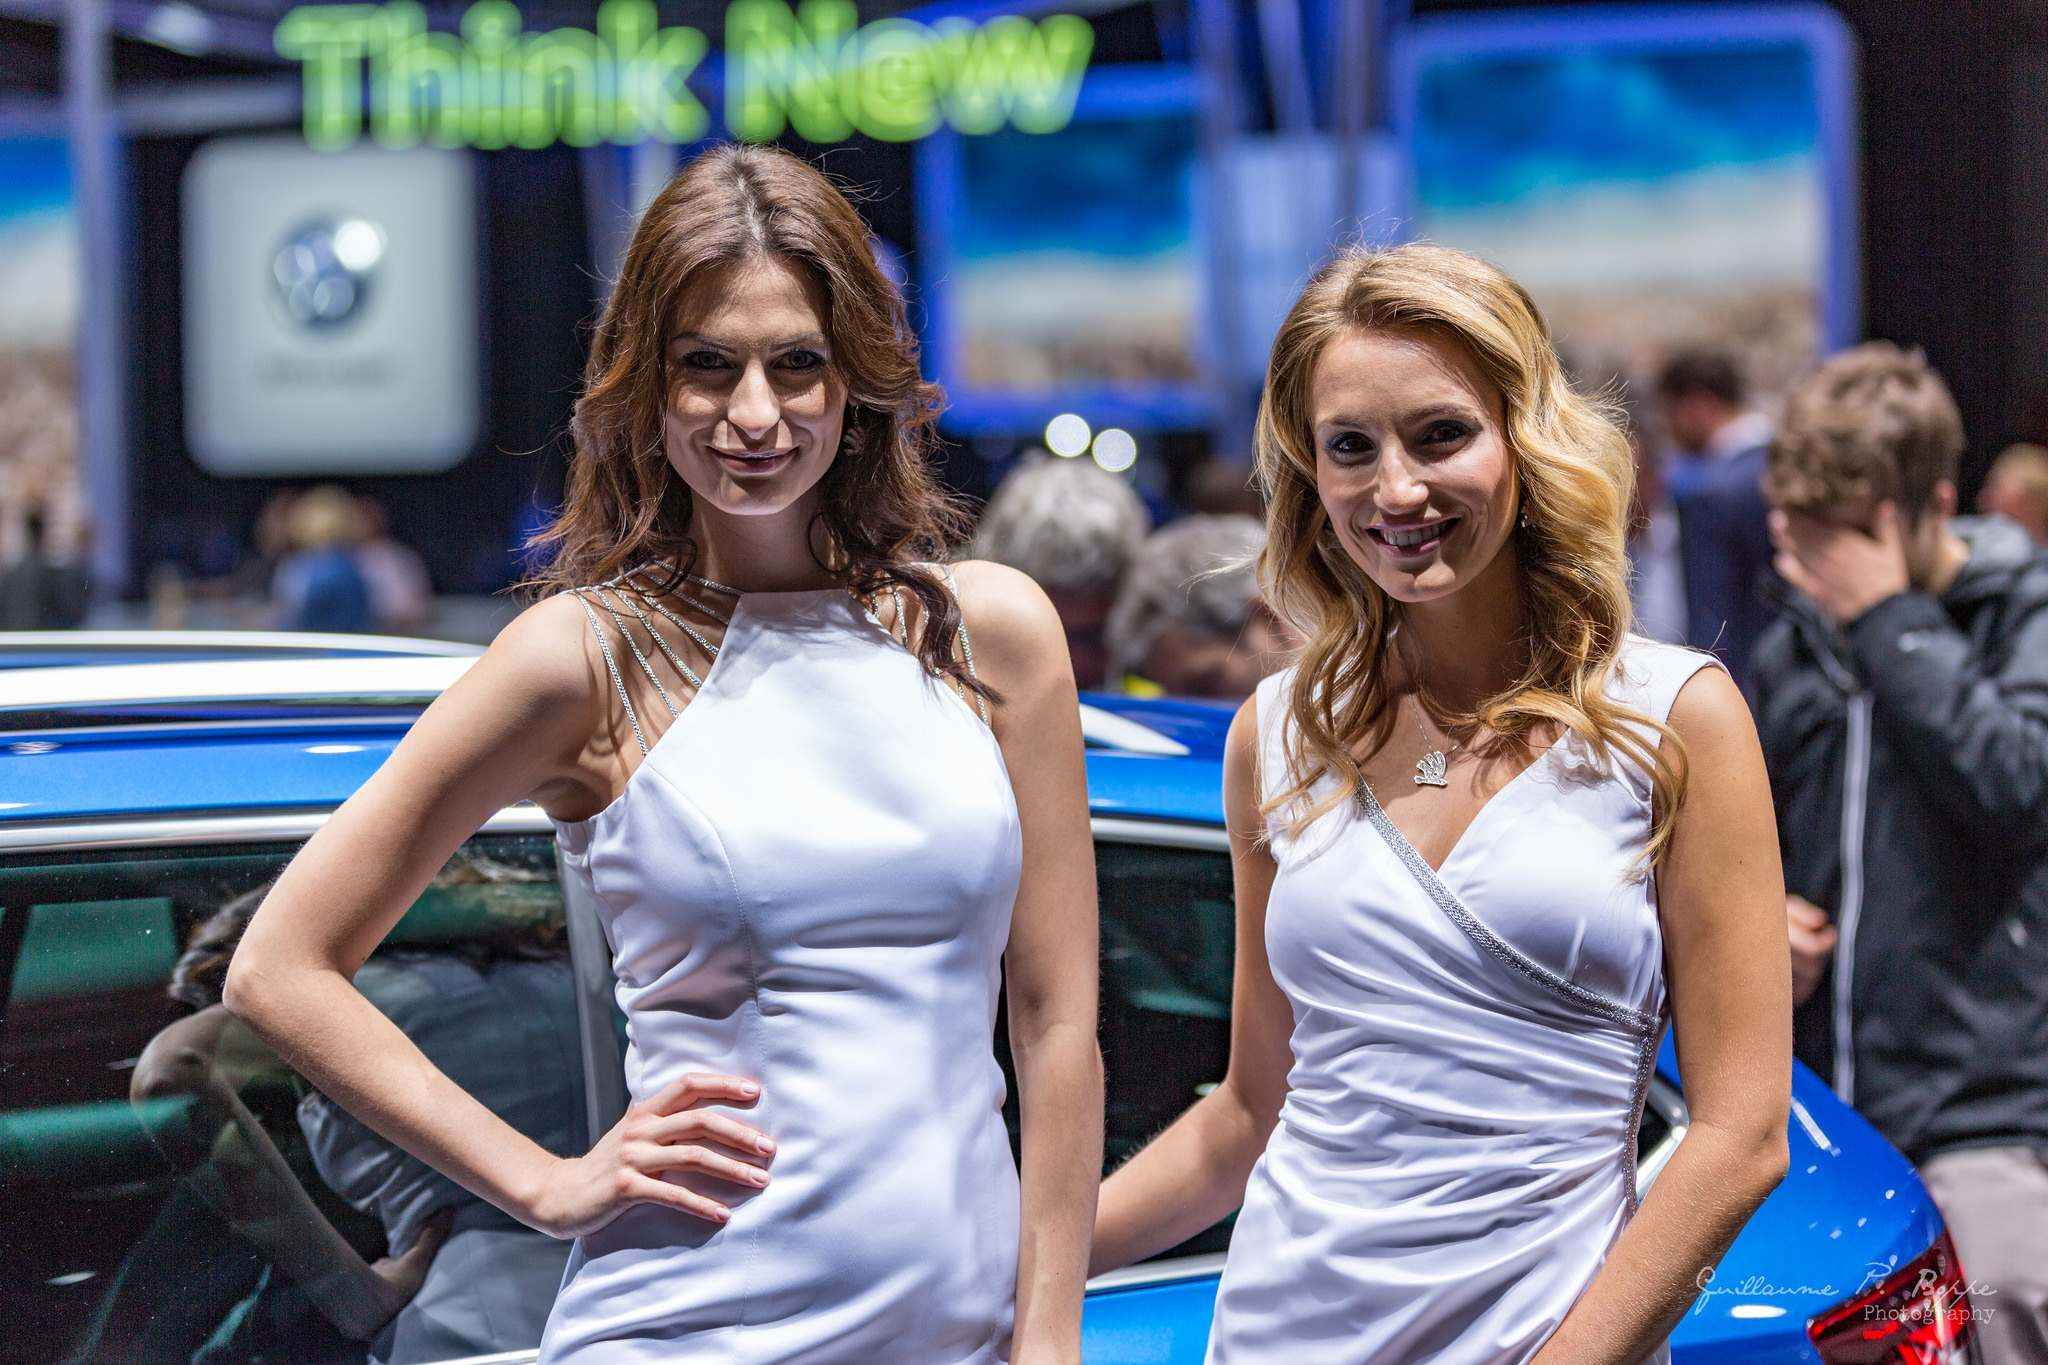 sexy hostess2 Beauty at Geneva International Motor Show 2017